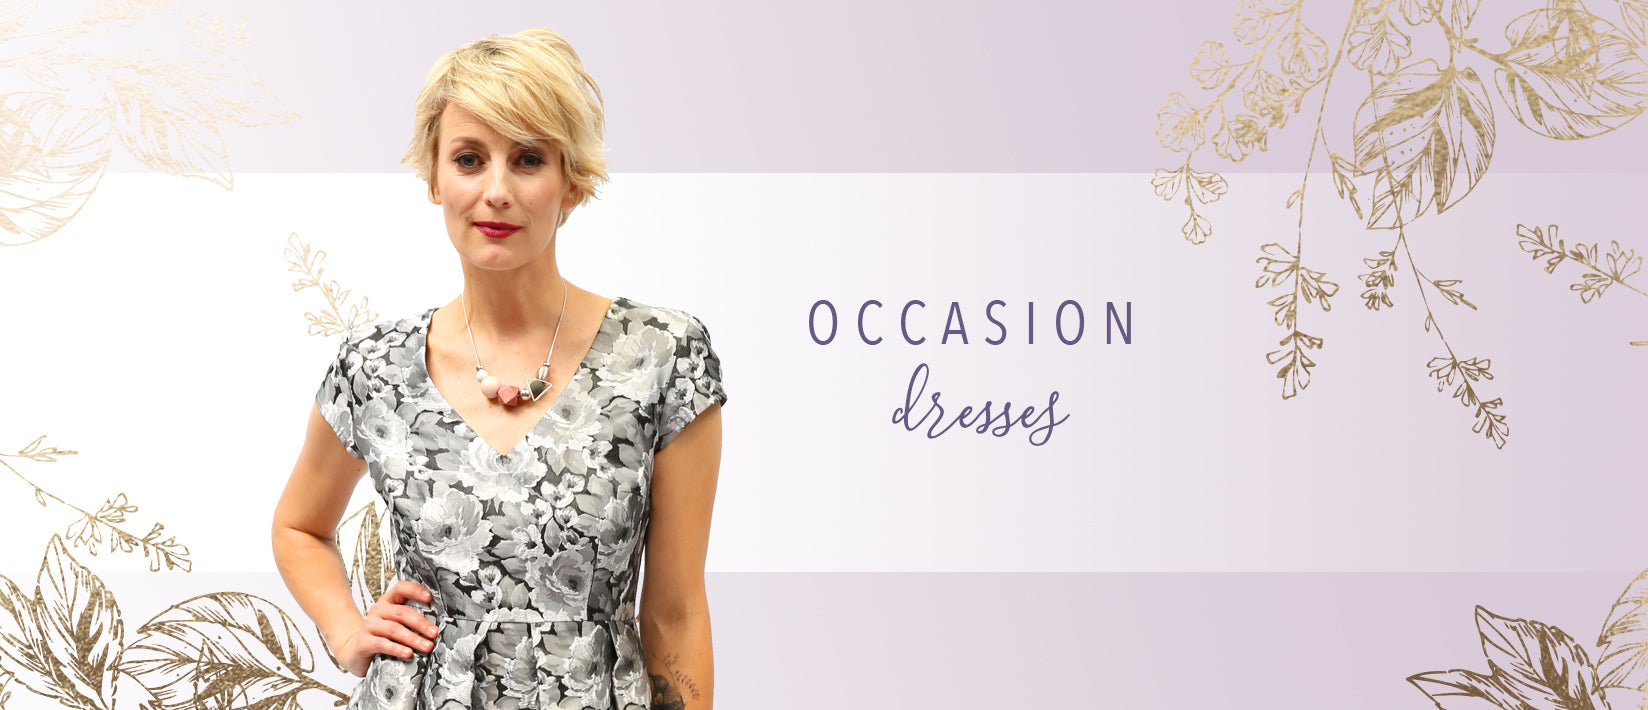 Occasion Dresses | New Zealand Fashion Design | Annah Stretton